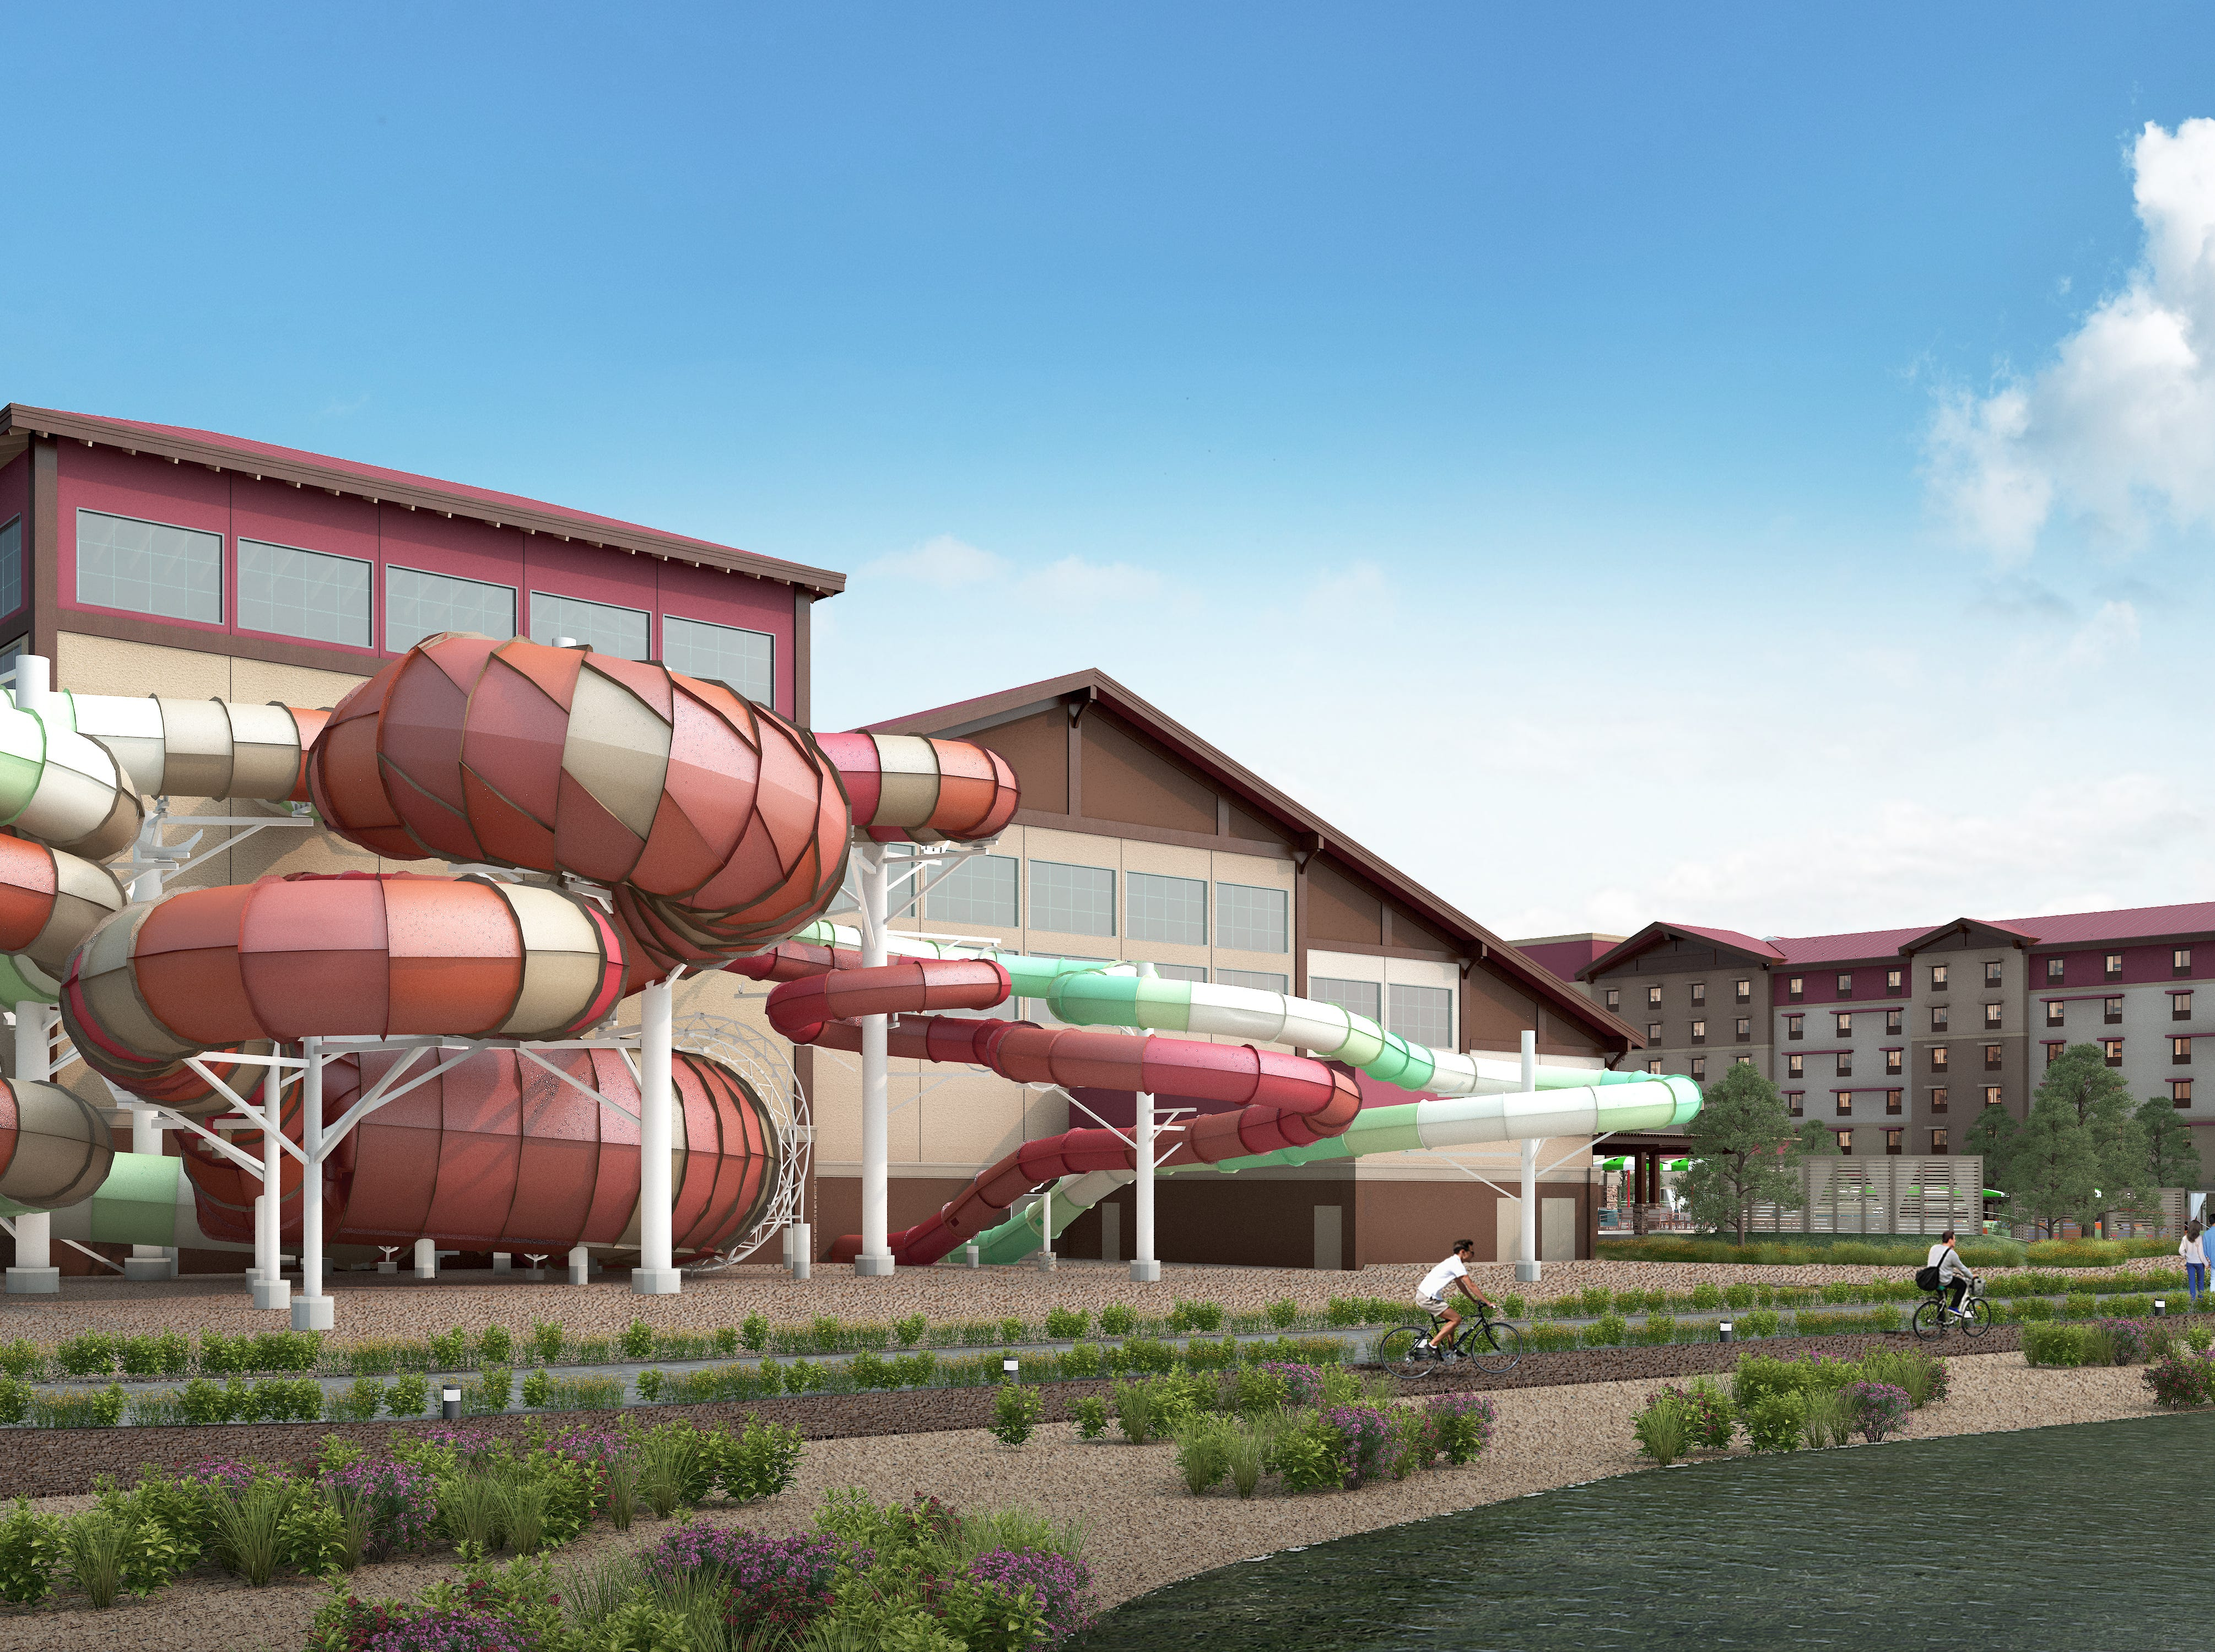 The waterslides at the Great Wolf Lodge Arizona will go outside the building. One of the slides imitates the scales of a rattlesnake. The resort will have raft rides and a slide with a 20-foot free fall for thrill seekers.